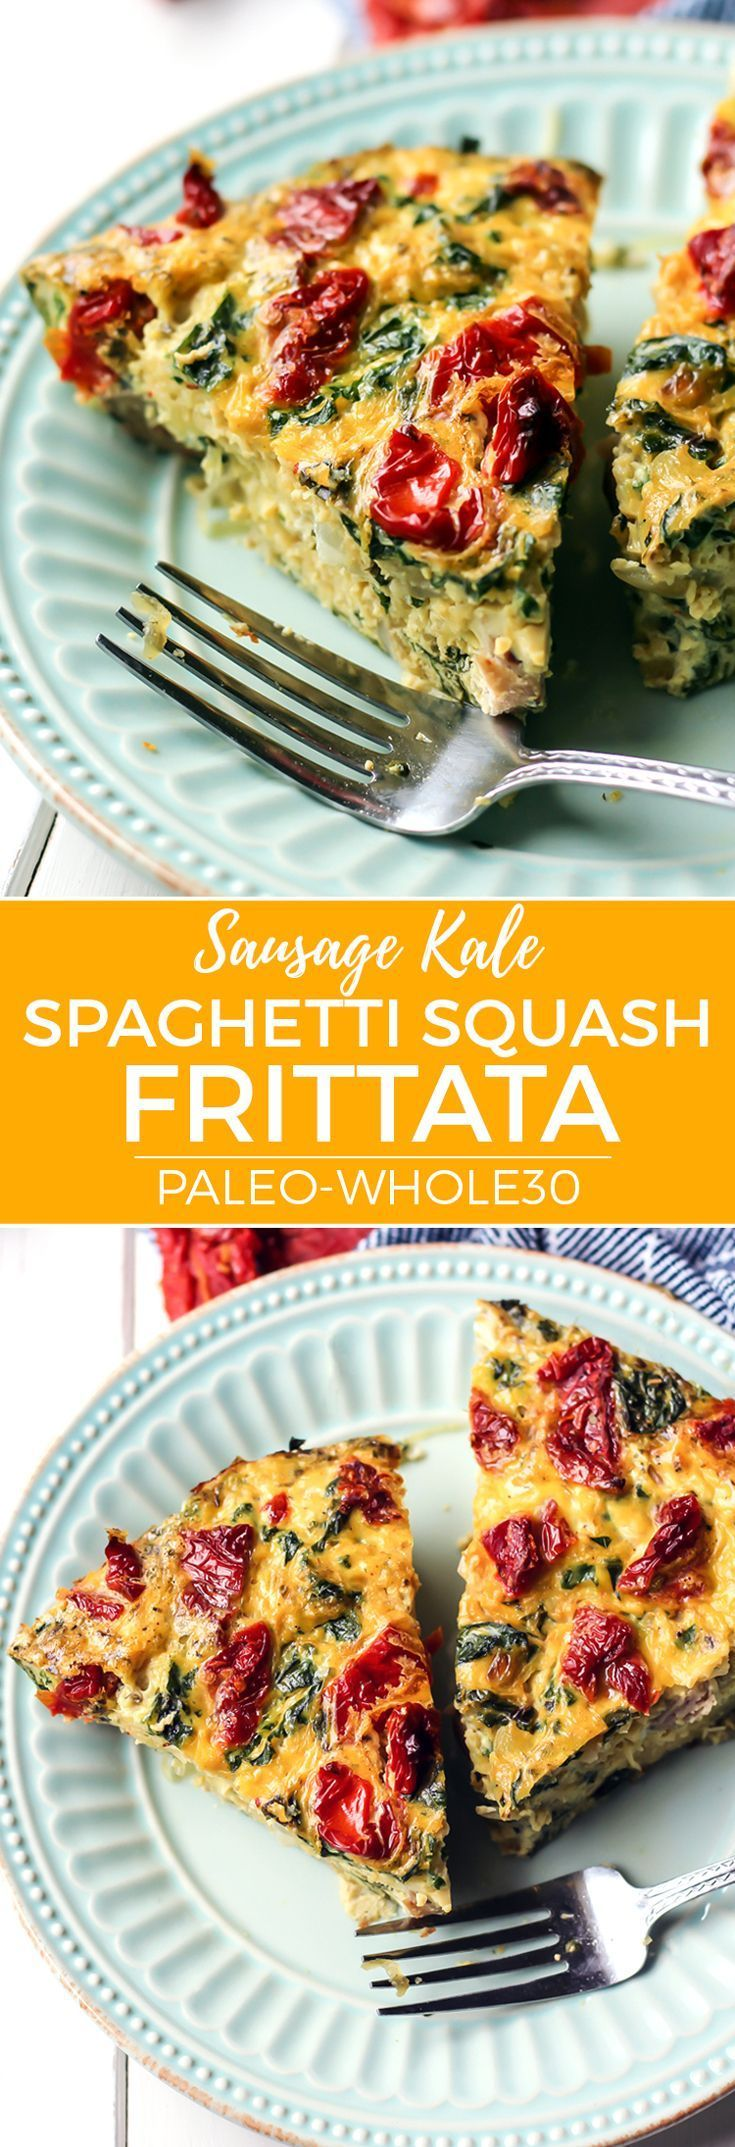 The perfect breakfast brunch frittata to add to your menu. Spaghetti squash adds some complex carbs to this filling and hearty meal. Gluten-free, Paleo and Whole30! All clean eating ingredients are used for this healthy breakfast recipe. Pin this healthy frittata to make during meal prep later!